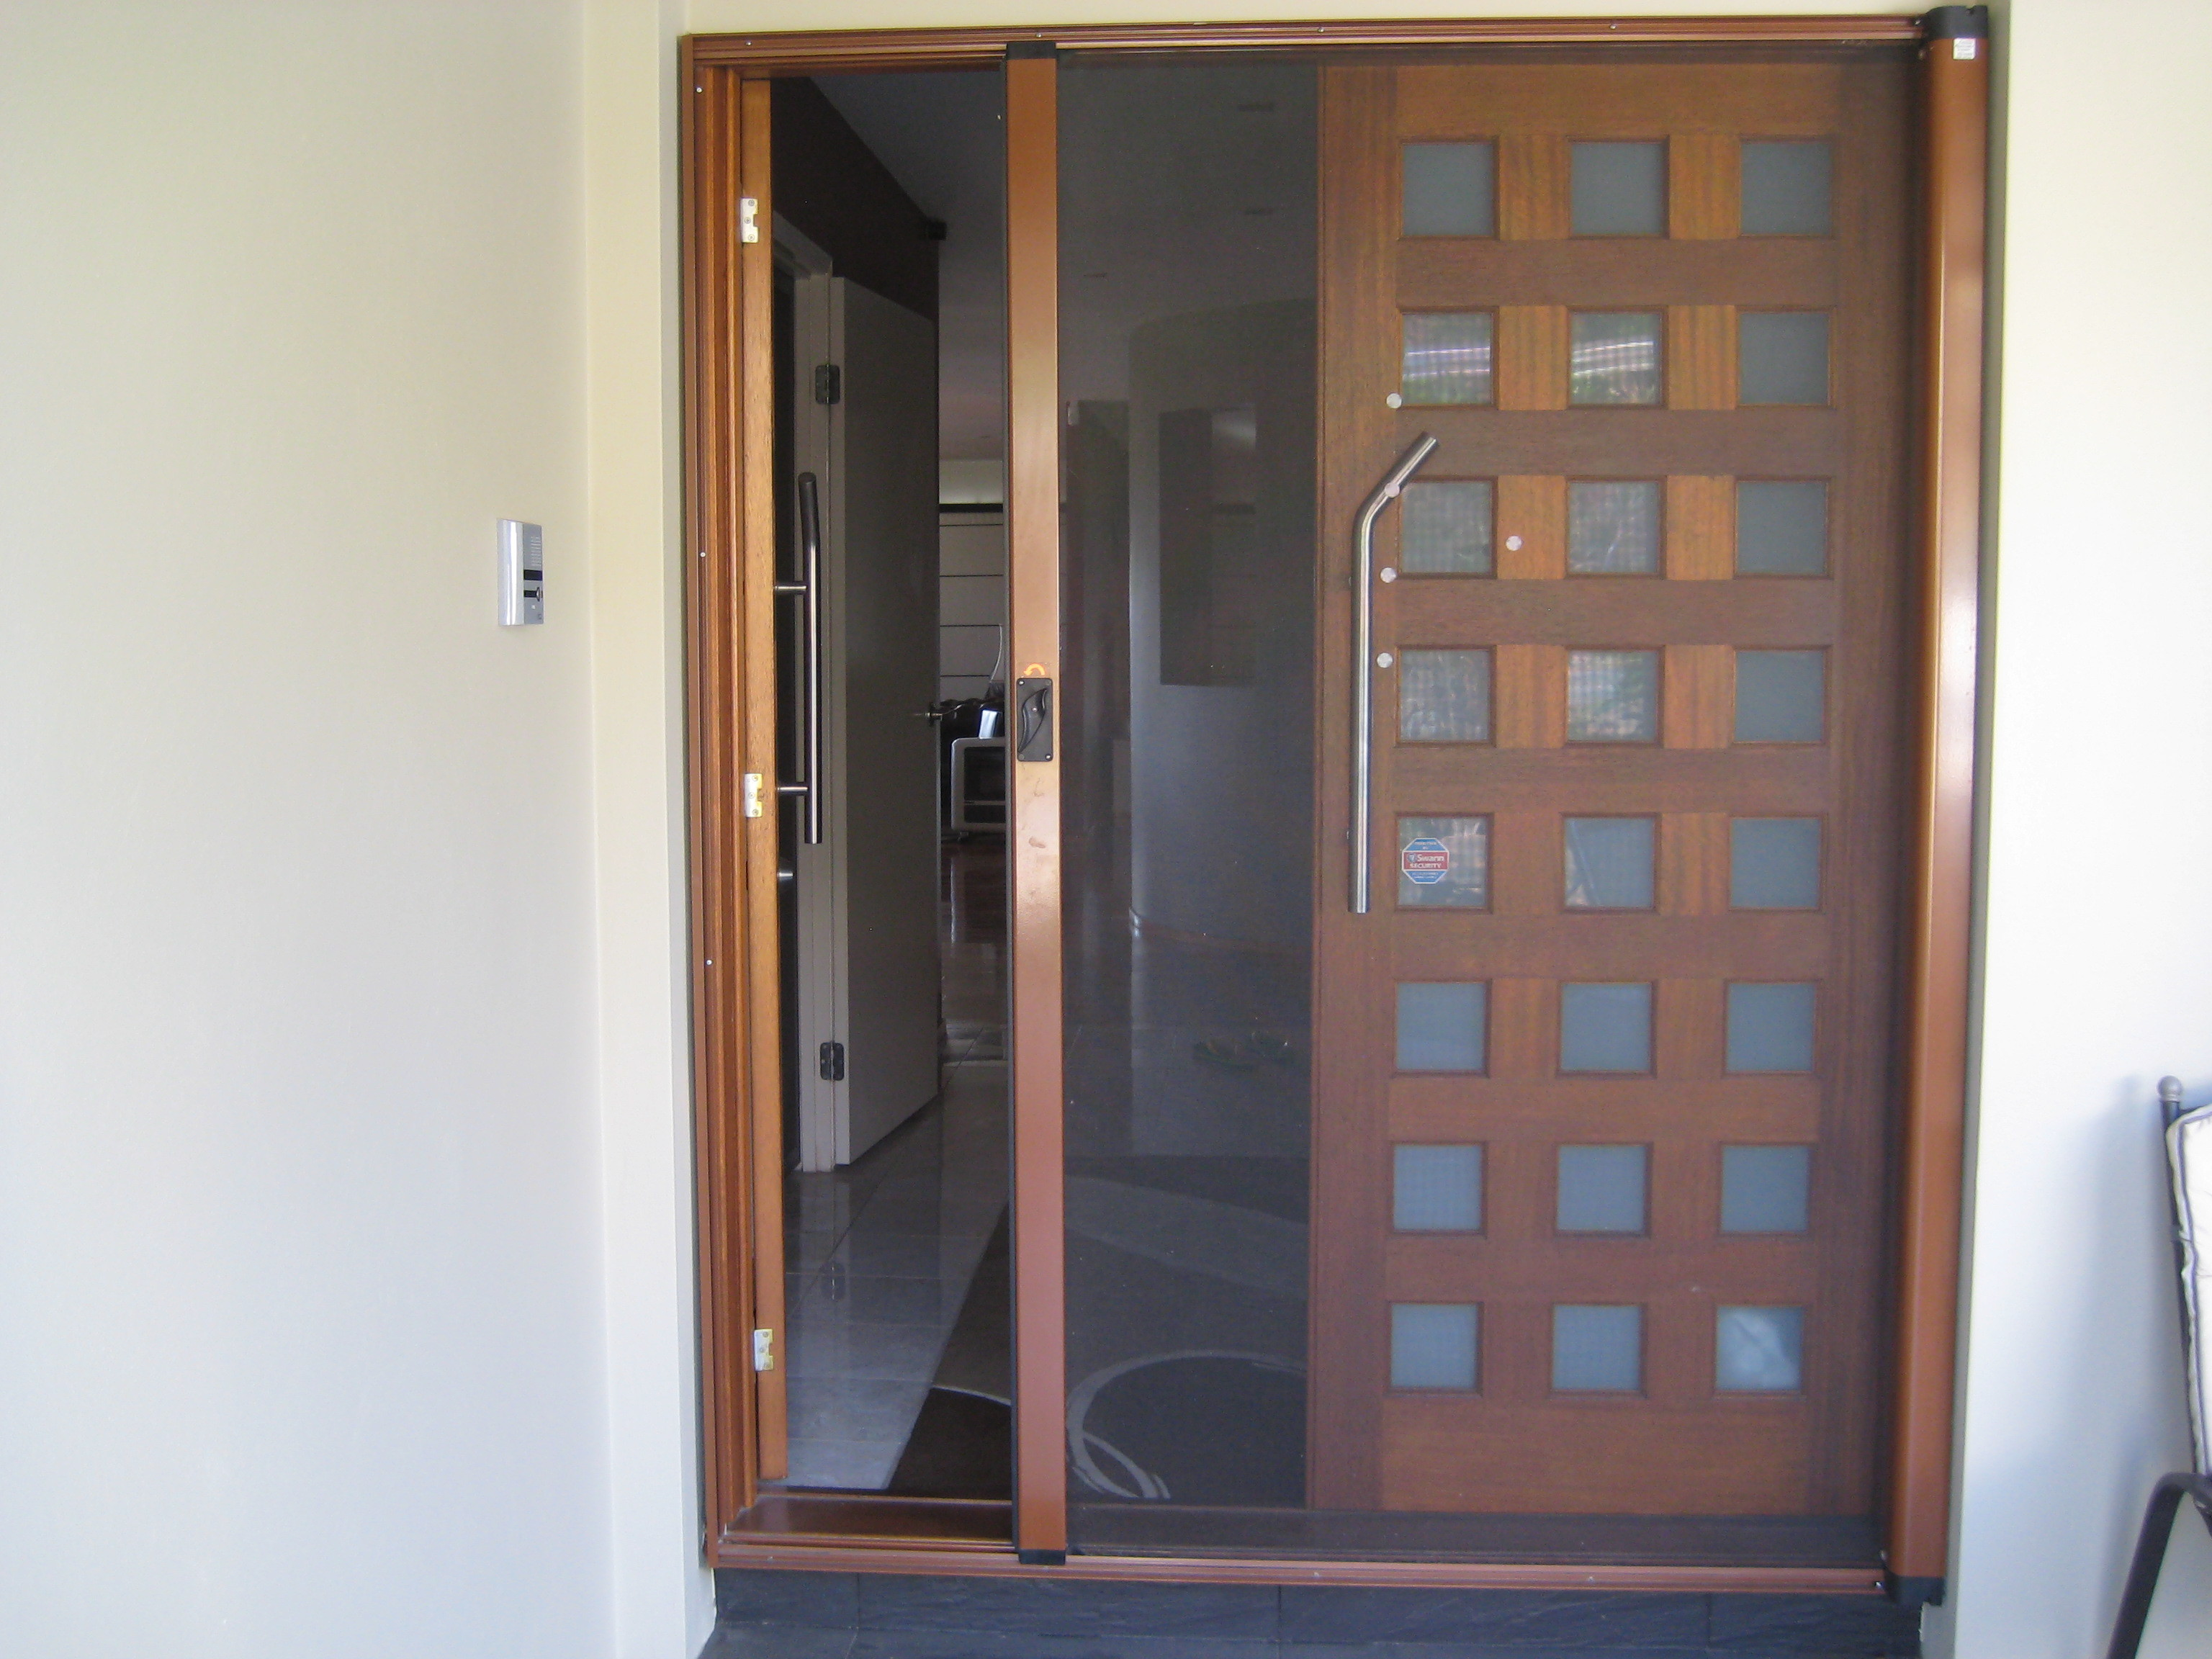 Retractable Freedom fly screen door Only. Already dismantled H210cm x W 170cm. Bilambil Heights  Mob 0412209724.